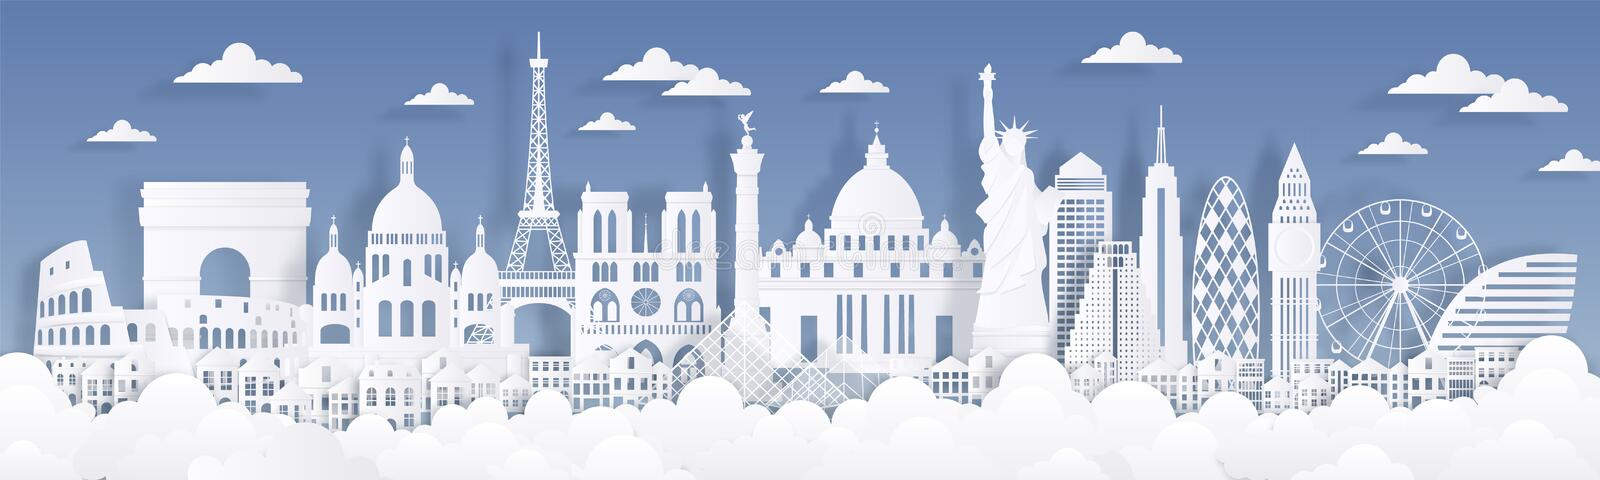 Paper cut landmarks. Travel the world background, skyline advertising card, Paris London Rome buildings silhouettes vector illustration